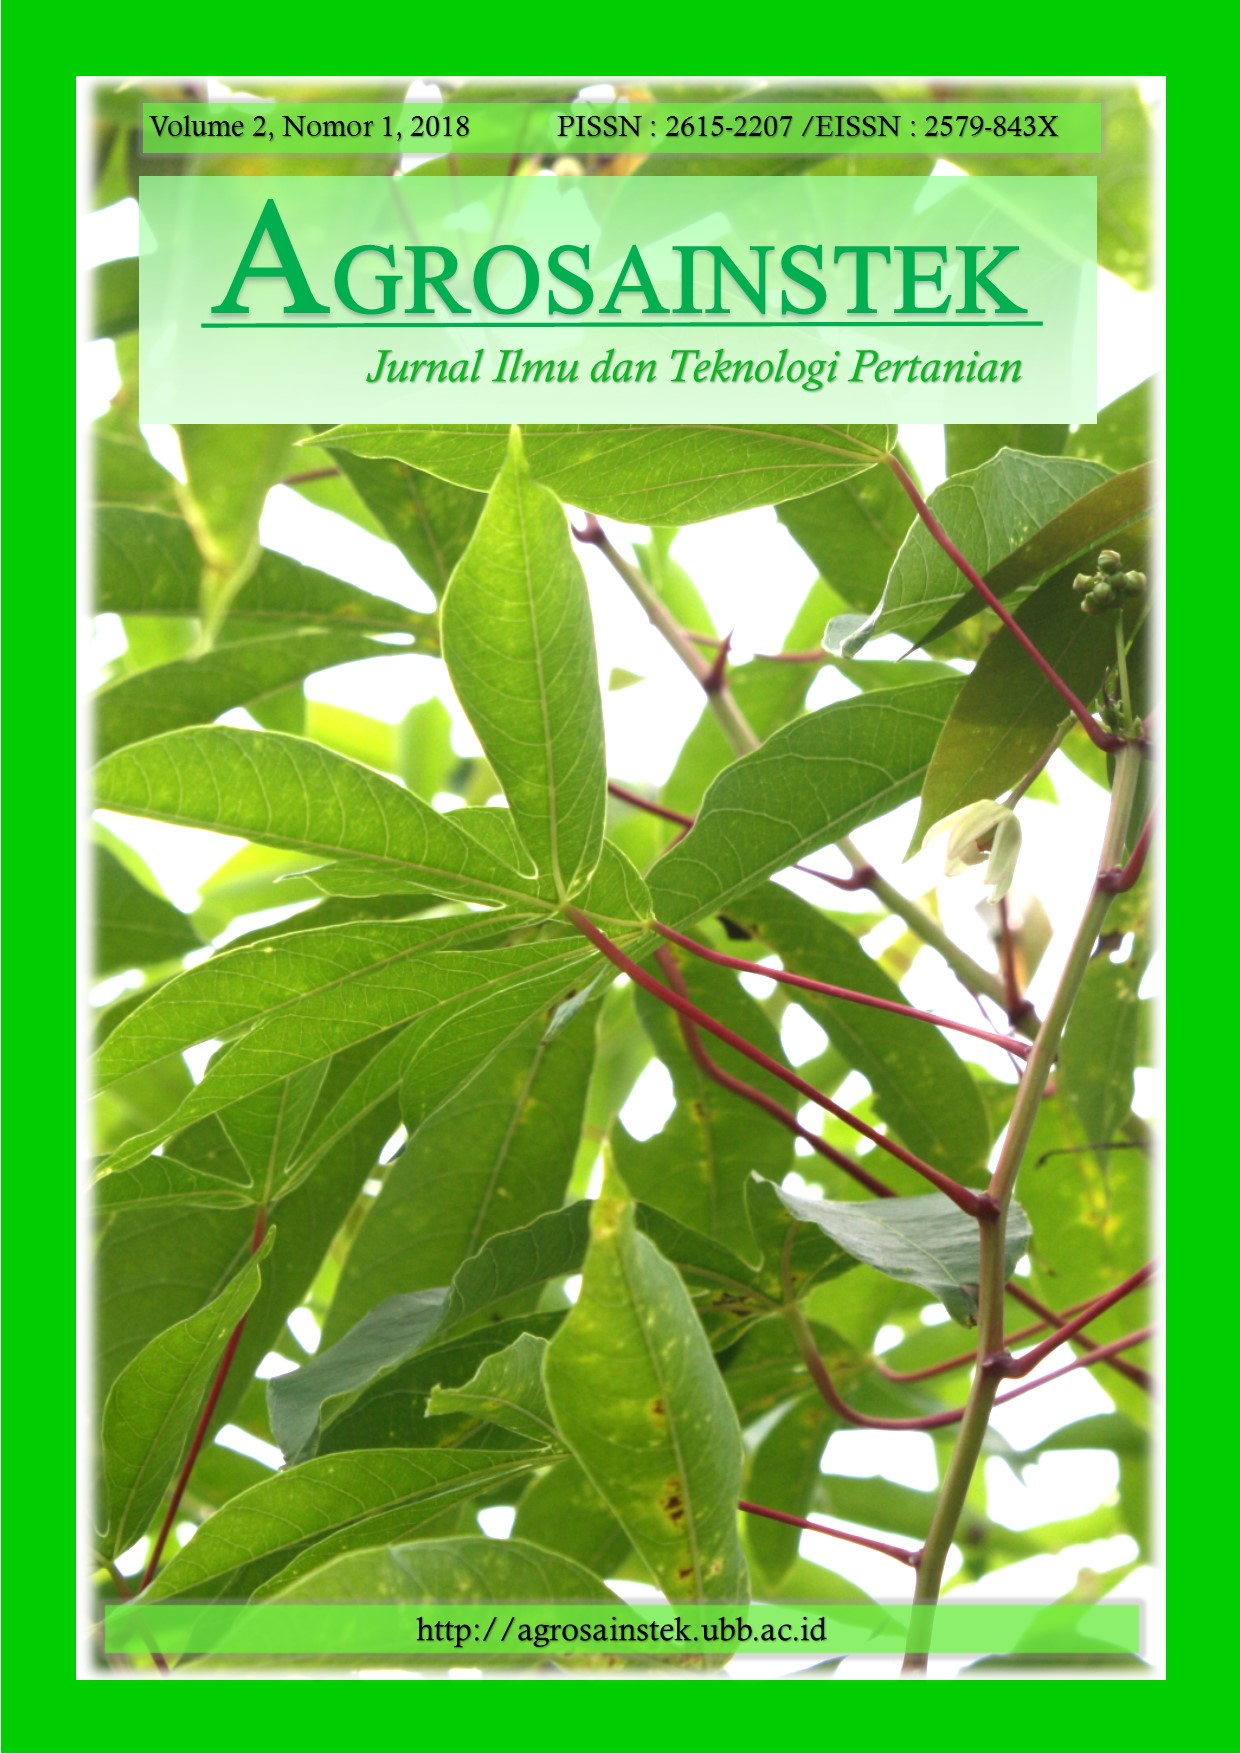 AGROSAINSTEK Volume 2 No 1 2018